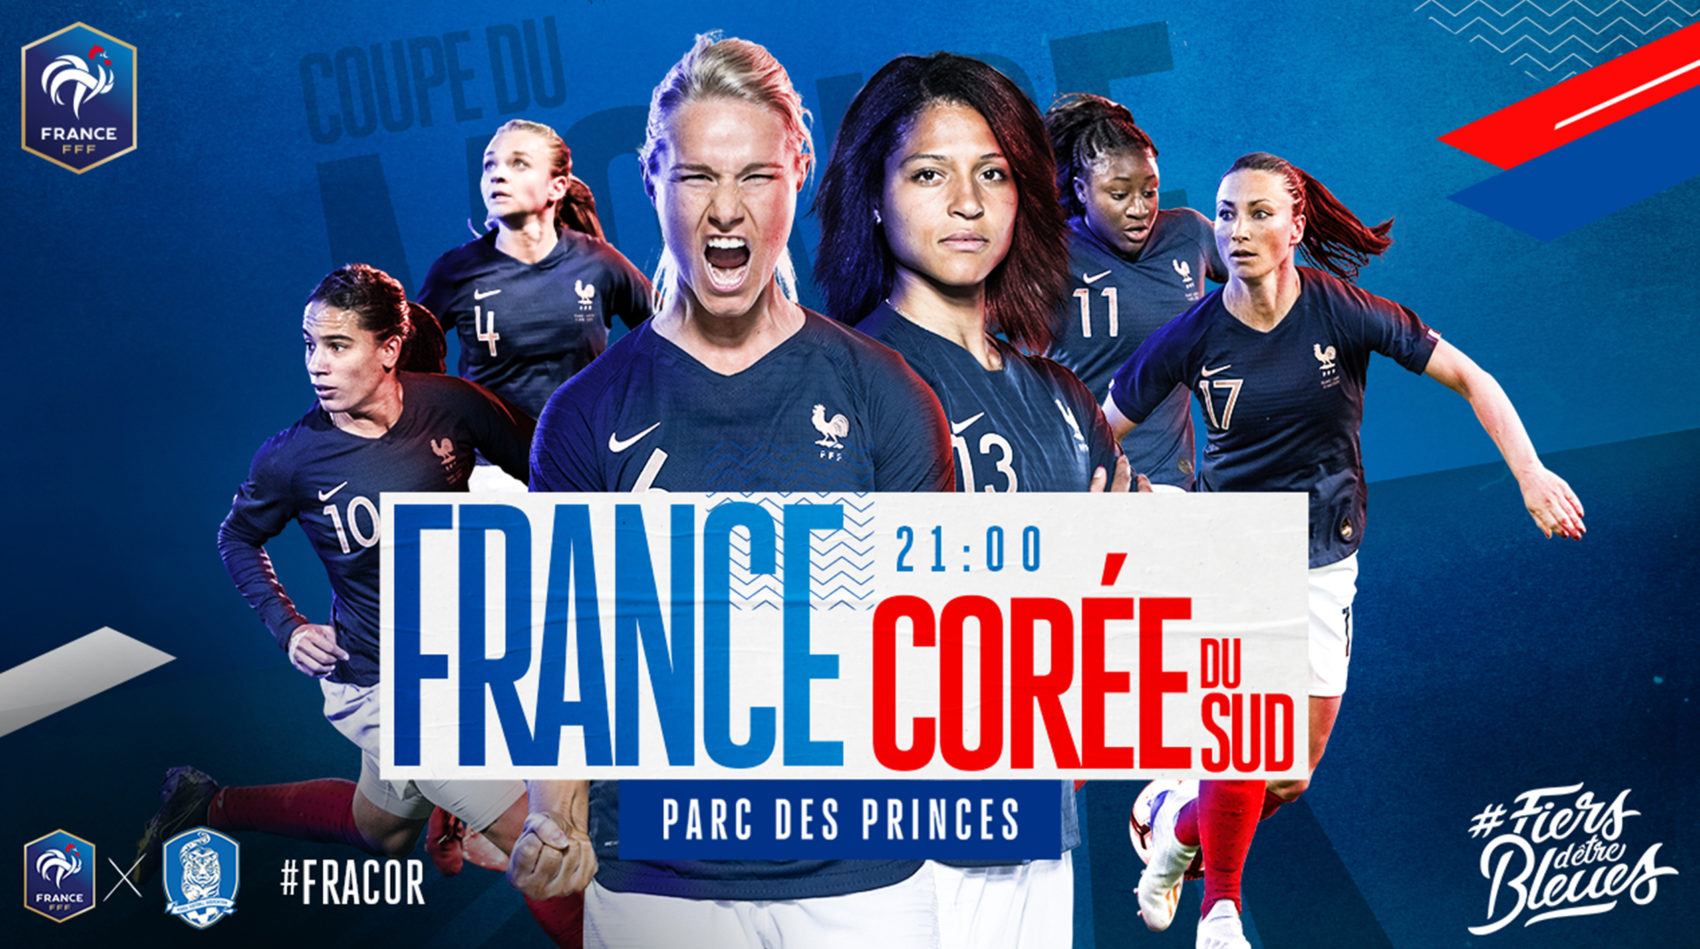 Projet_project_FFF_federation_francaise_football_french_federation_Coupe_du_Monde_Feminine_FIFA_France_2019_TM_world_cup_women_KV_match